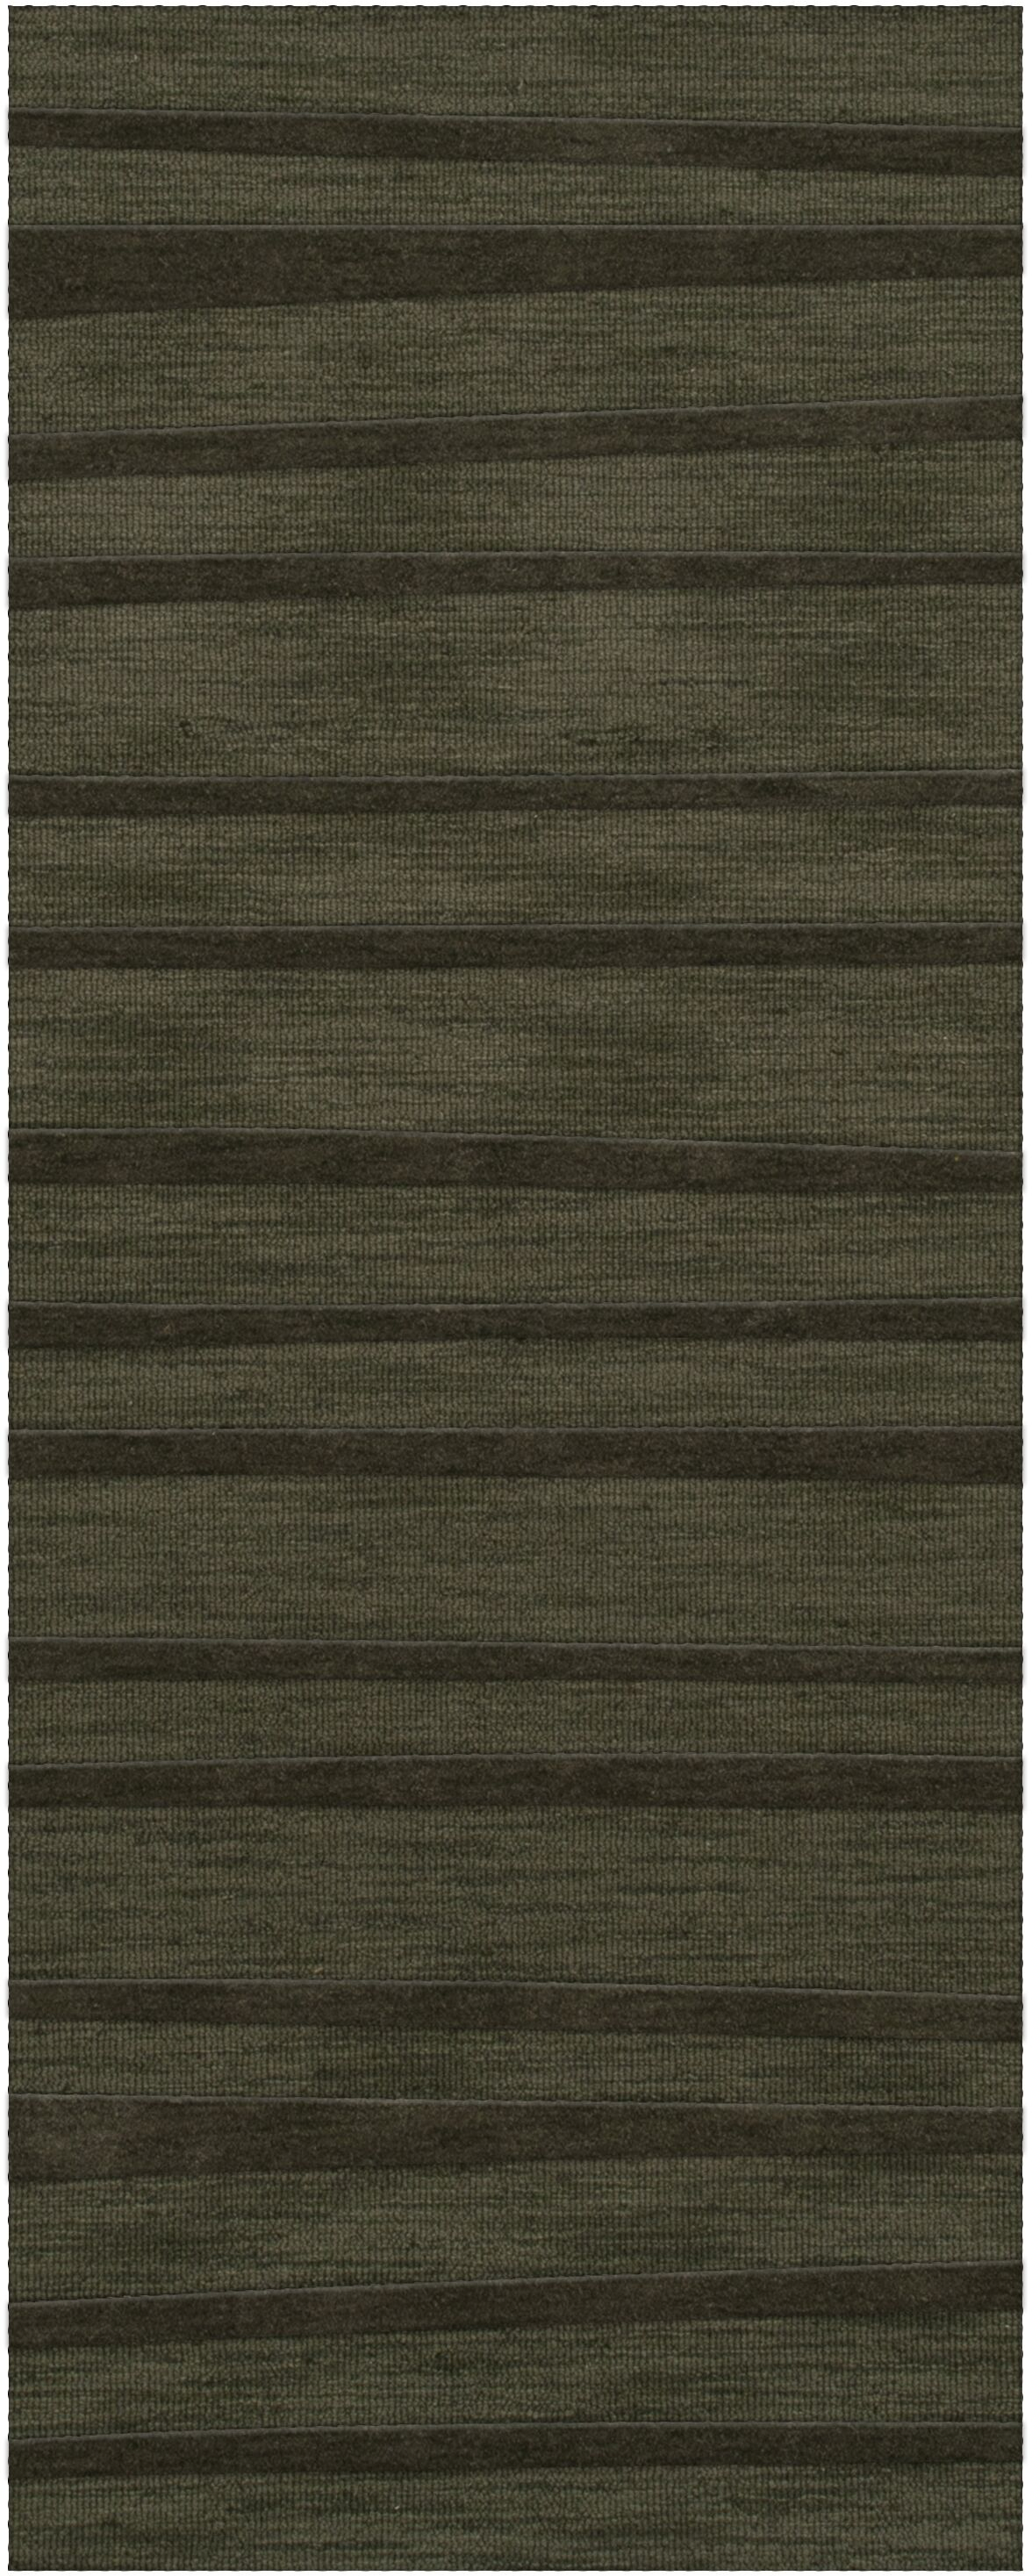 Dover Tufted Wool Fern Area Rug Rug Size: Runner 2'6